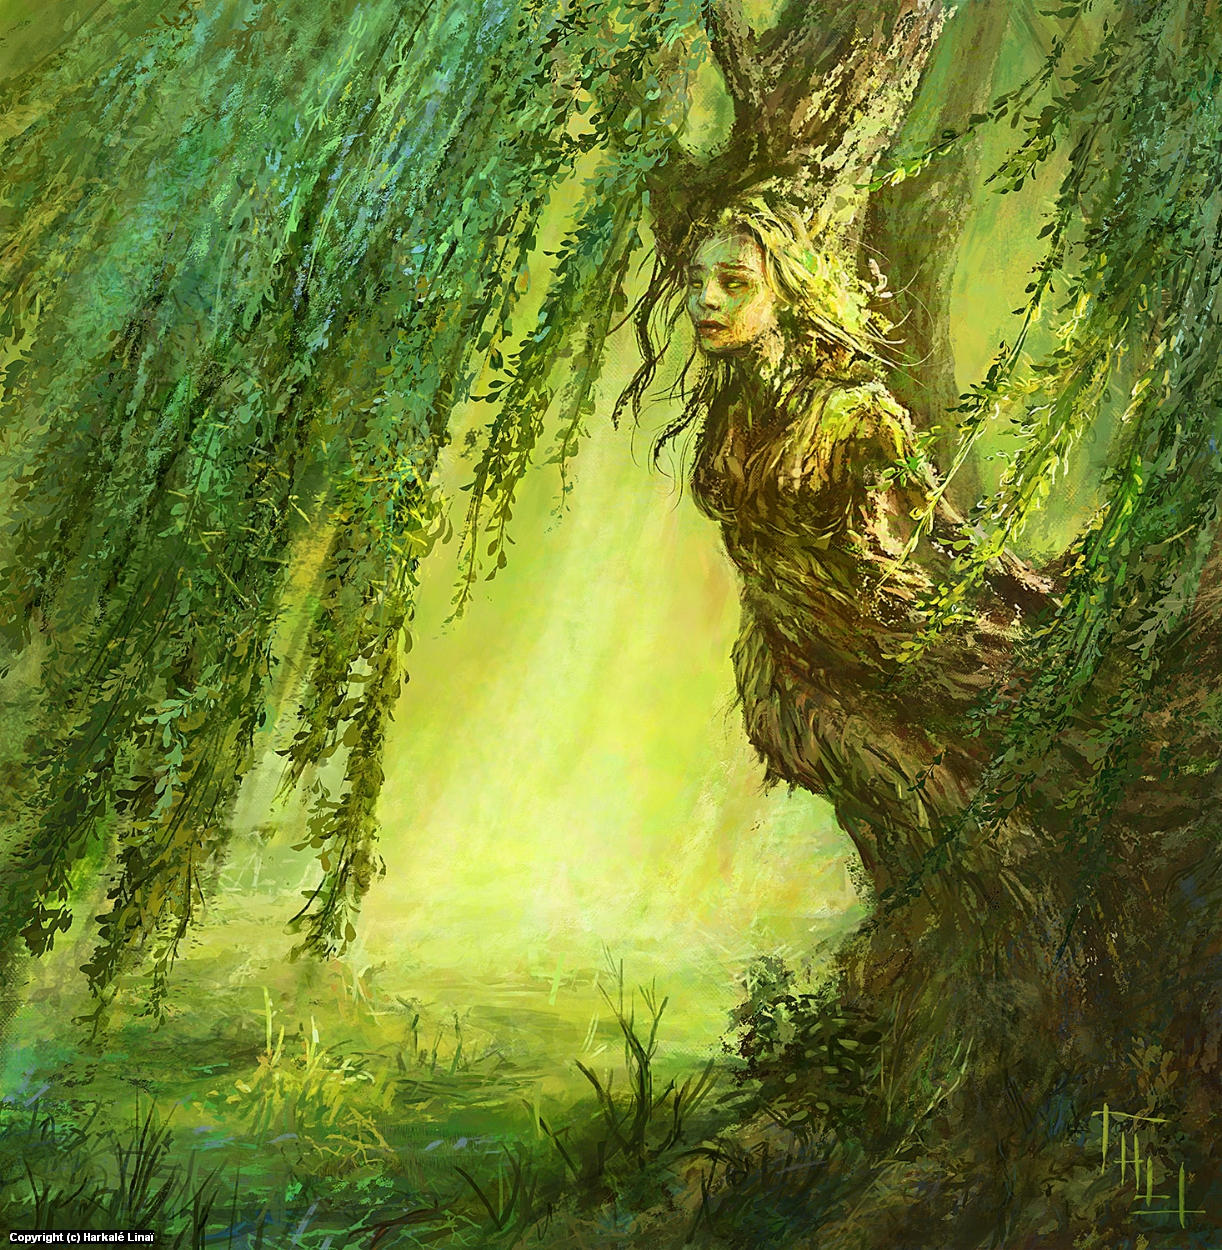 Weeping Dryad Artwork by Harkalé Linaï